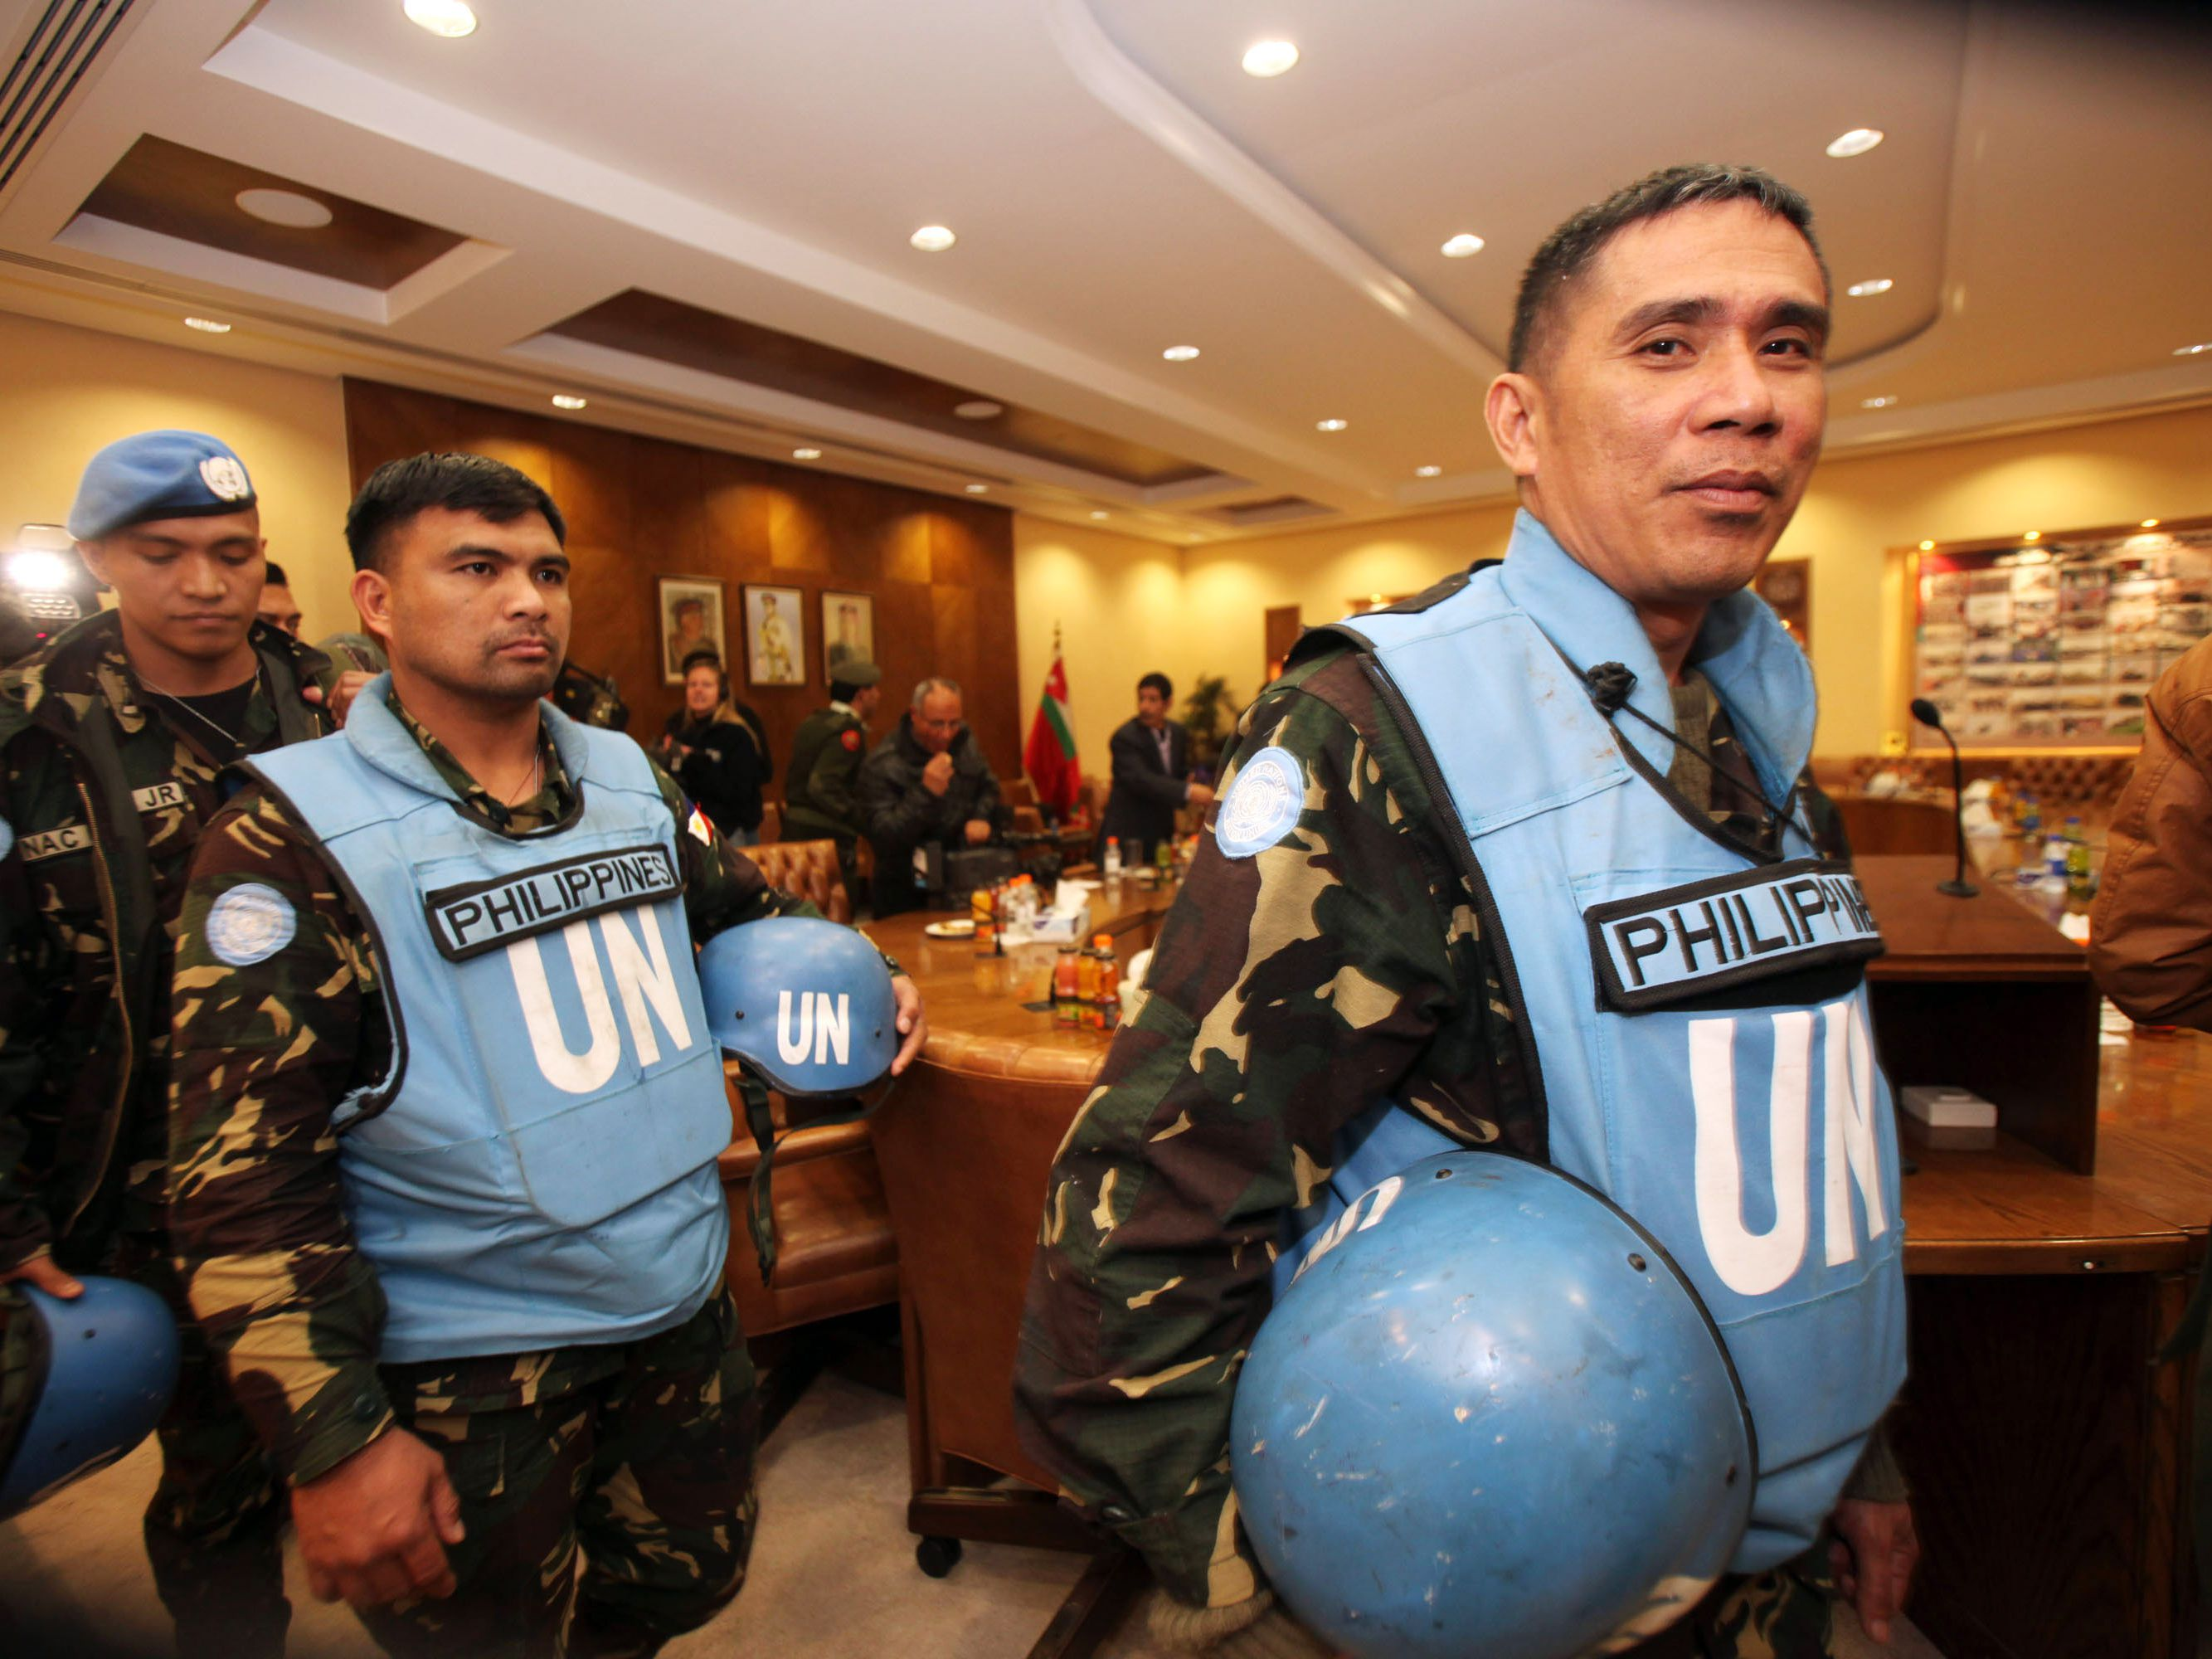 United Nations: Definition, How It Works, Its Effect